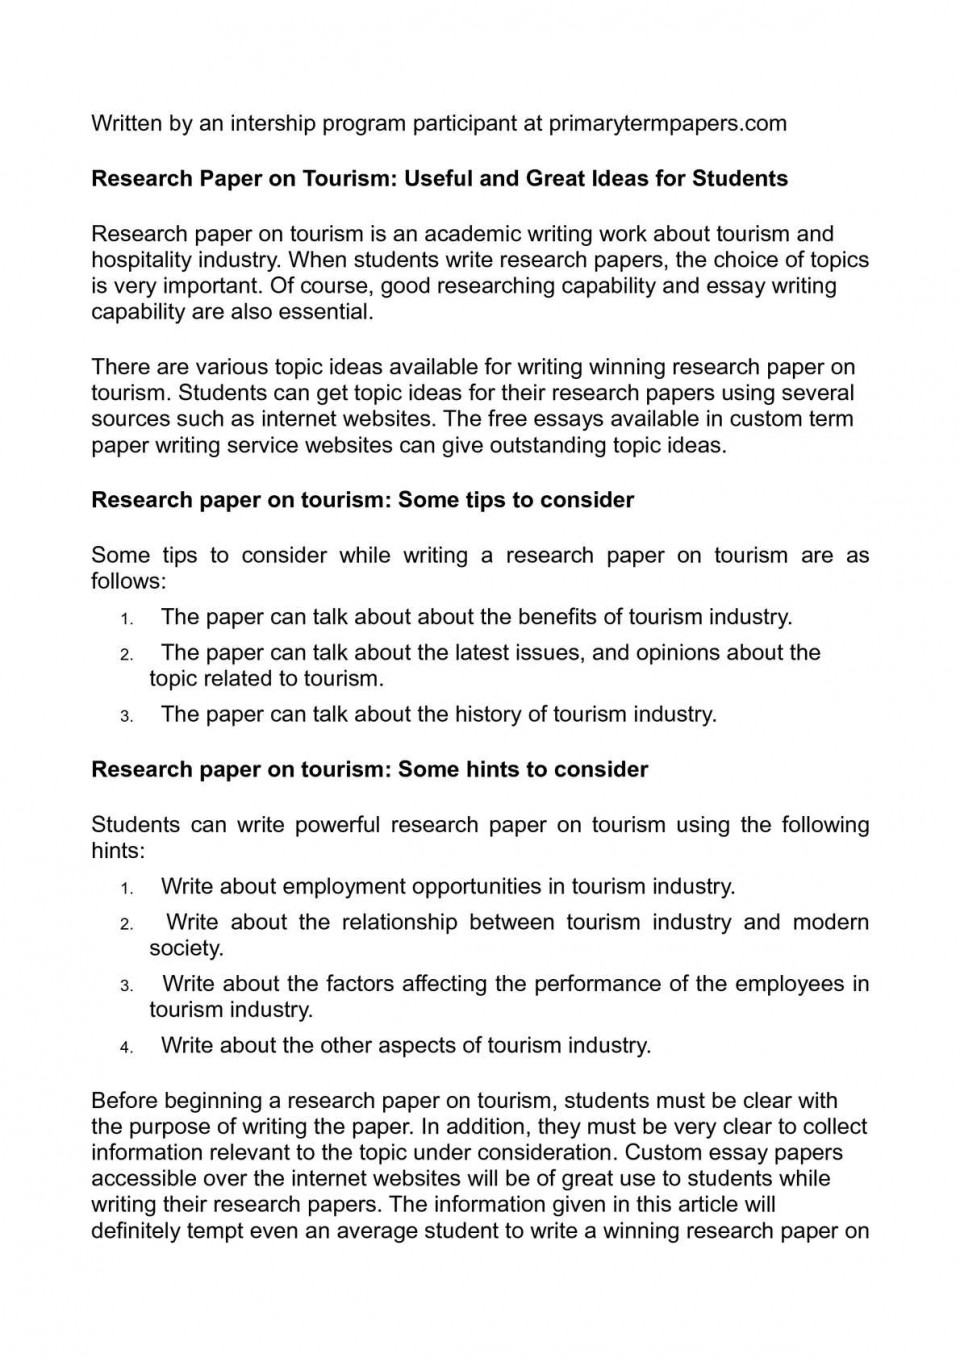 009 Research Paper Ideas For Fascinating Papers In Computer Science Middle School Topic High 960